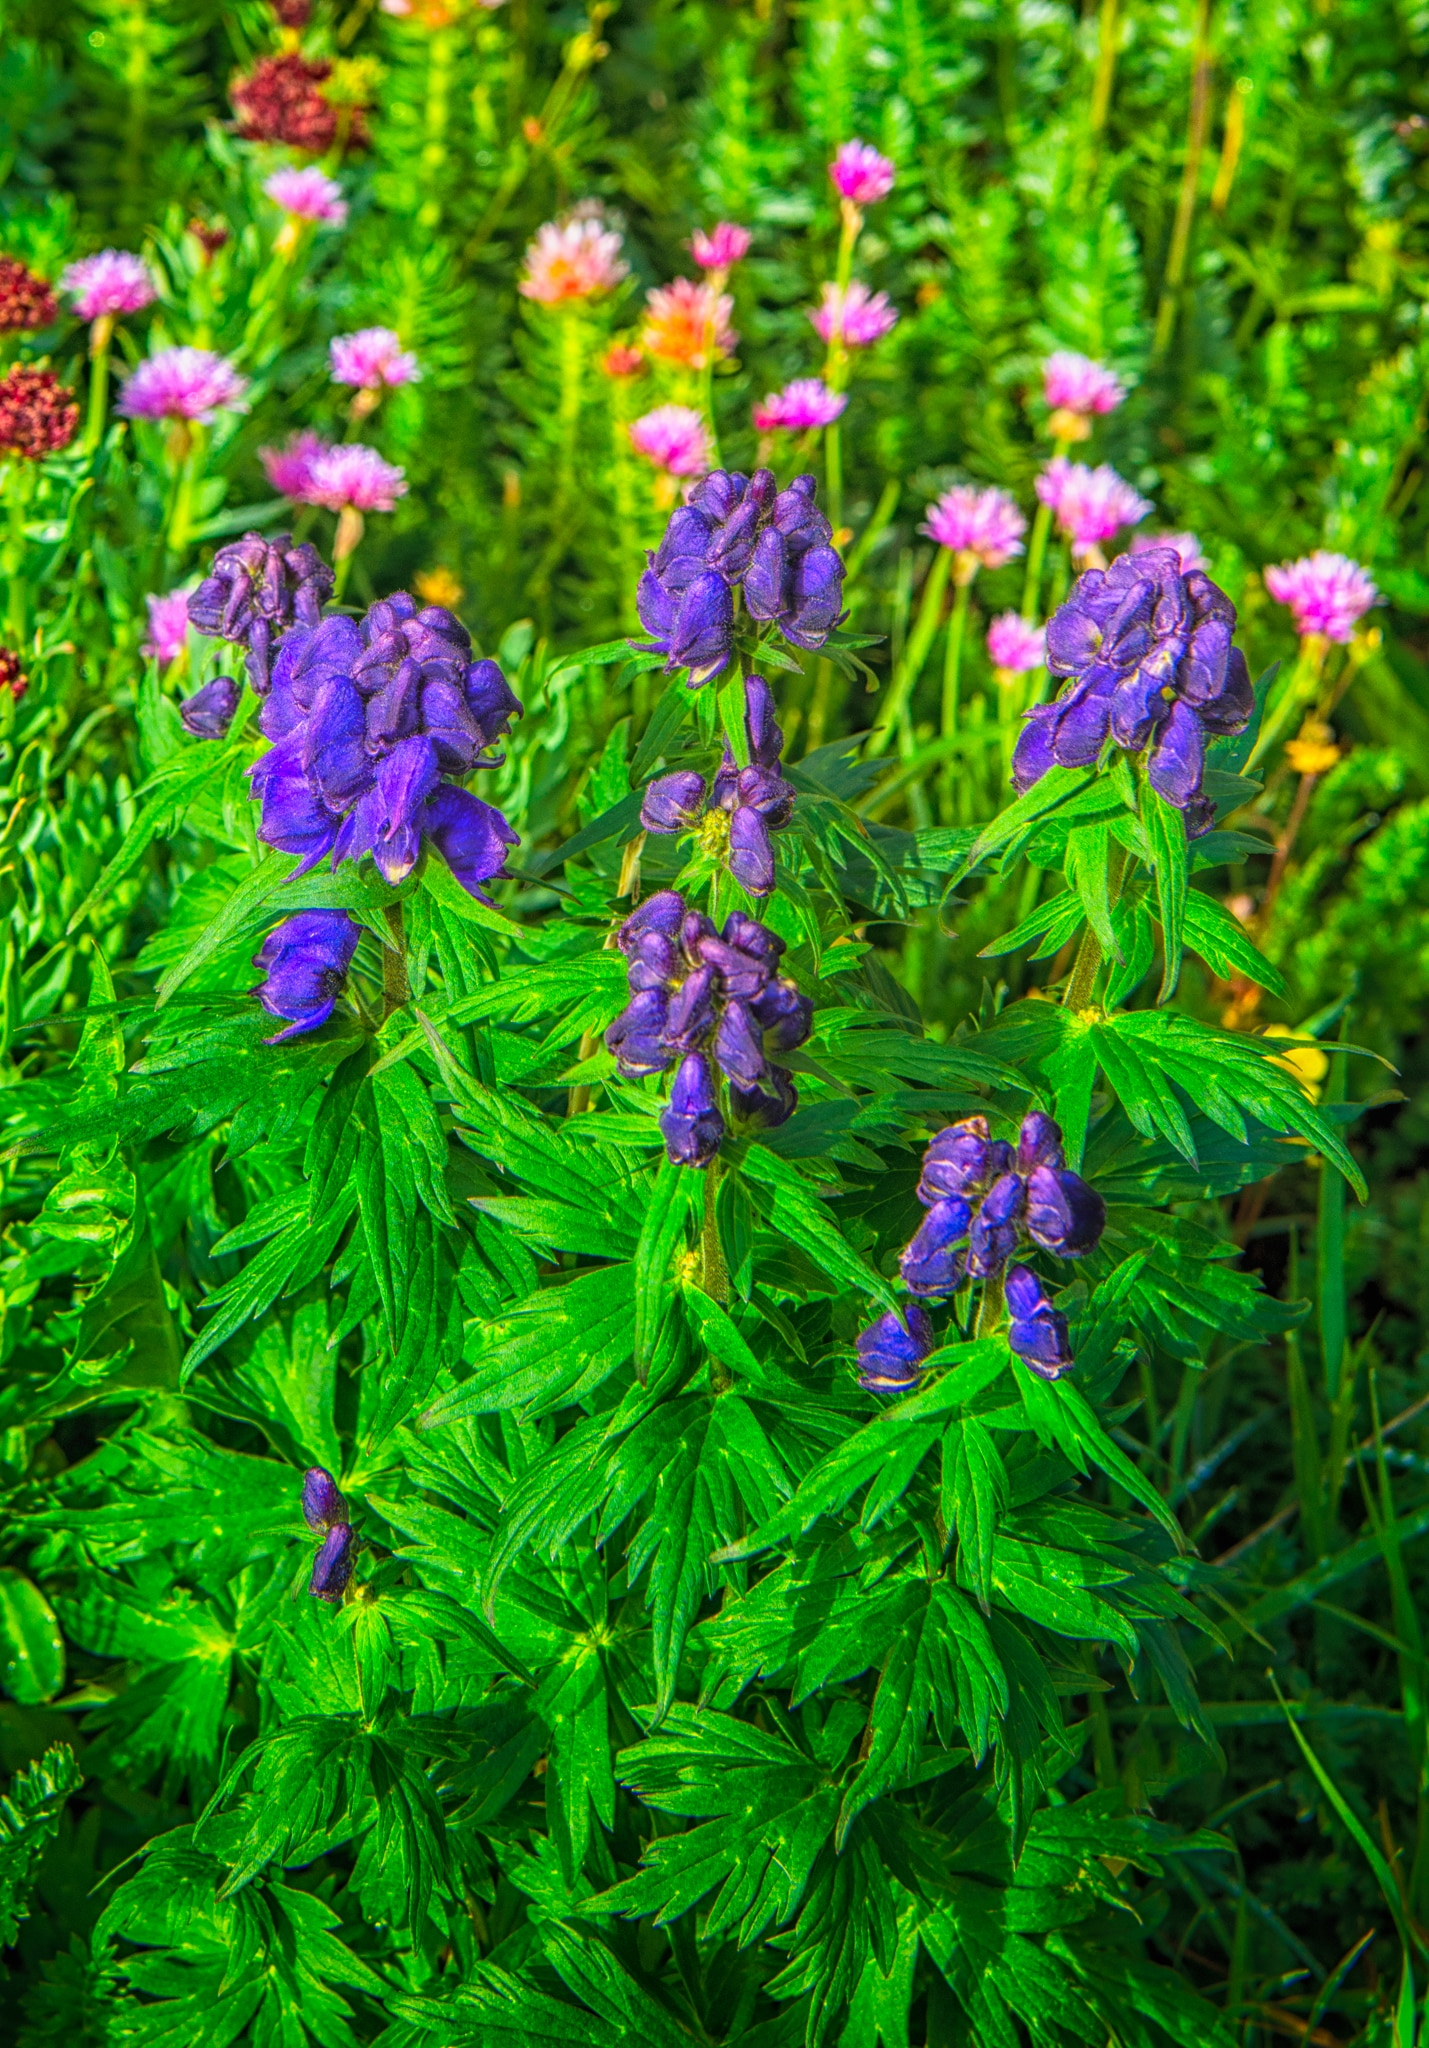 Kings Crown, Monkshood, Avens, and other species of wildflowers grow near Clear Lake, a hanging lake below Peak 13309 at the end of FS 815, located in the mountains between Ouray and Silverton, Colorado.